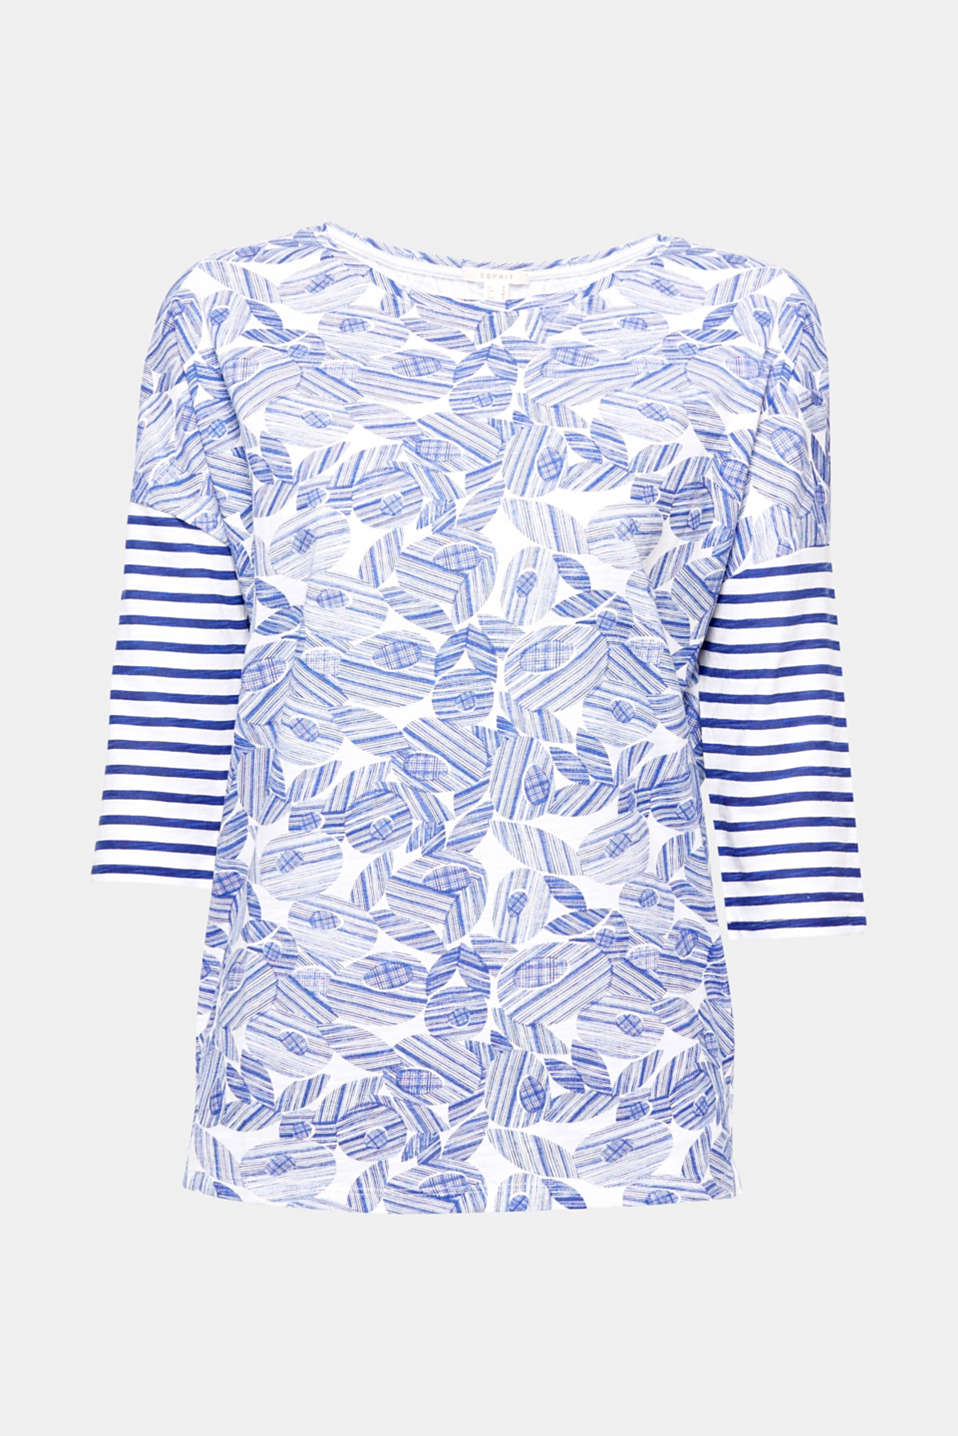 Abstract flowers and sporty stripes – a brand new look for this top with dropped shoulders!